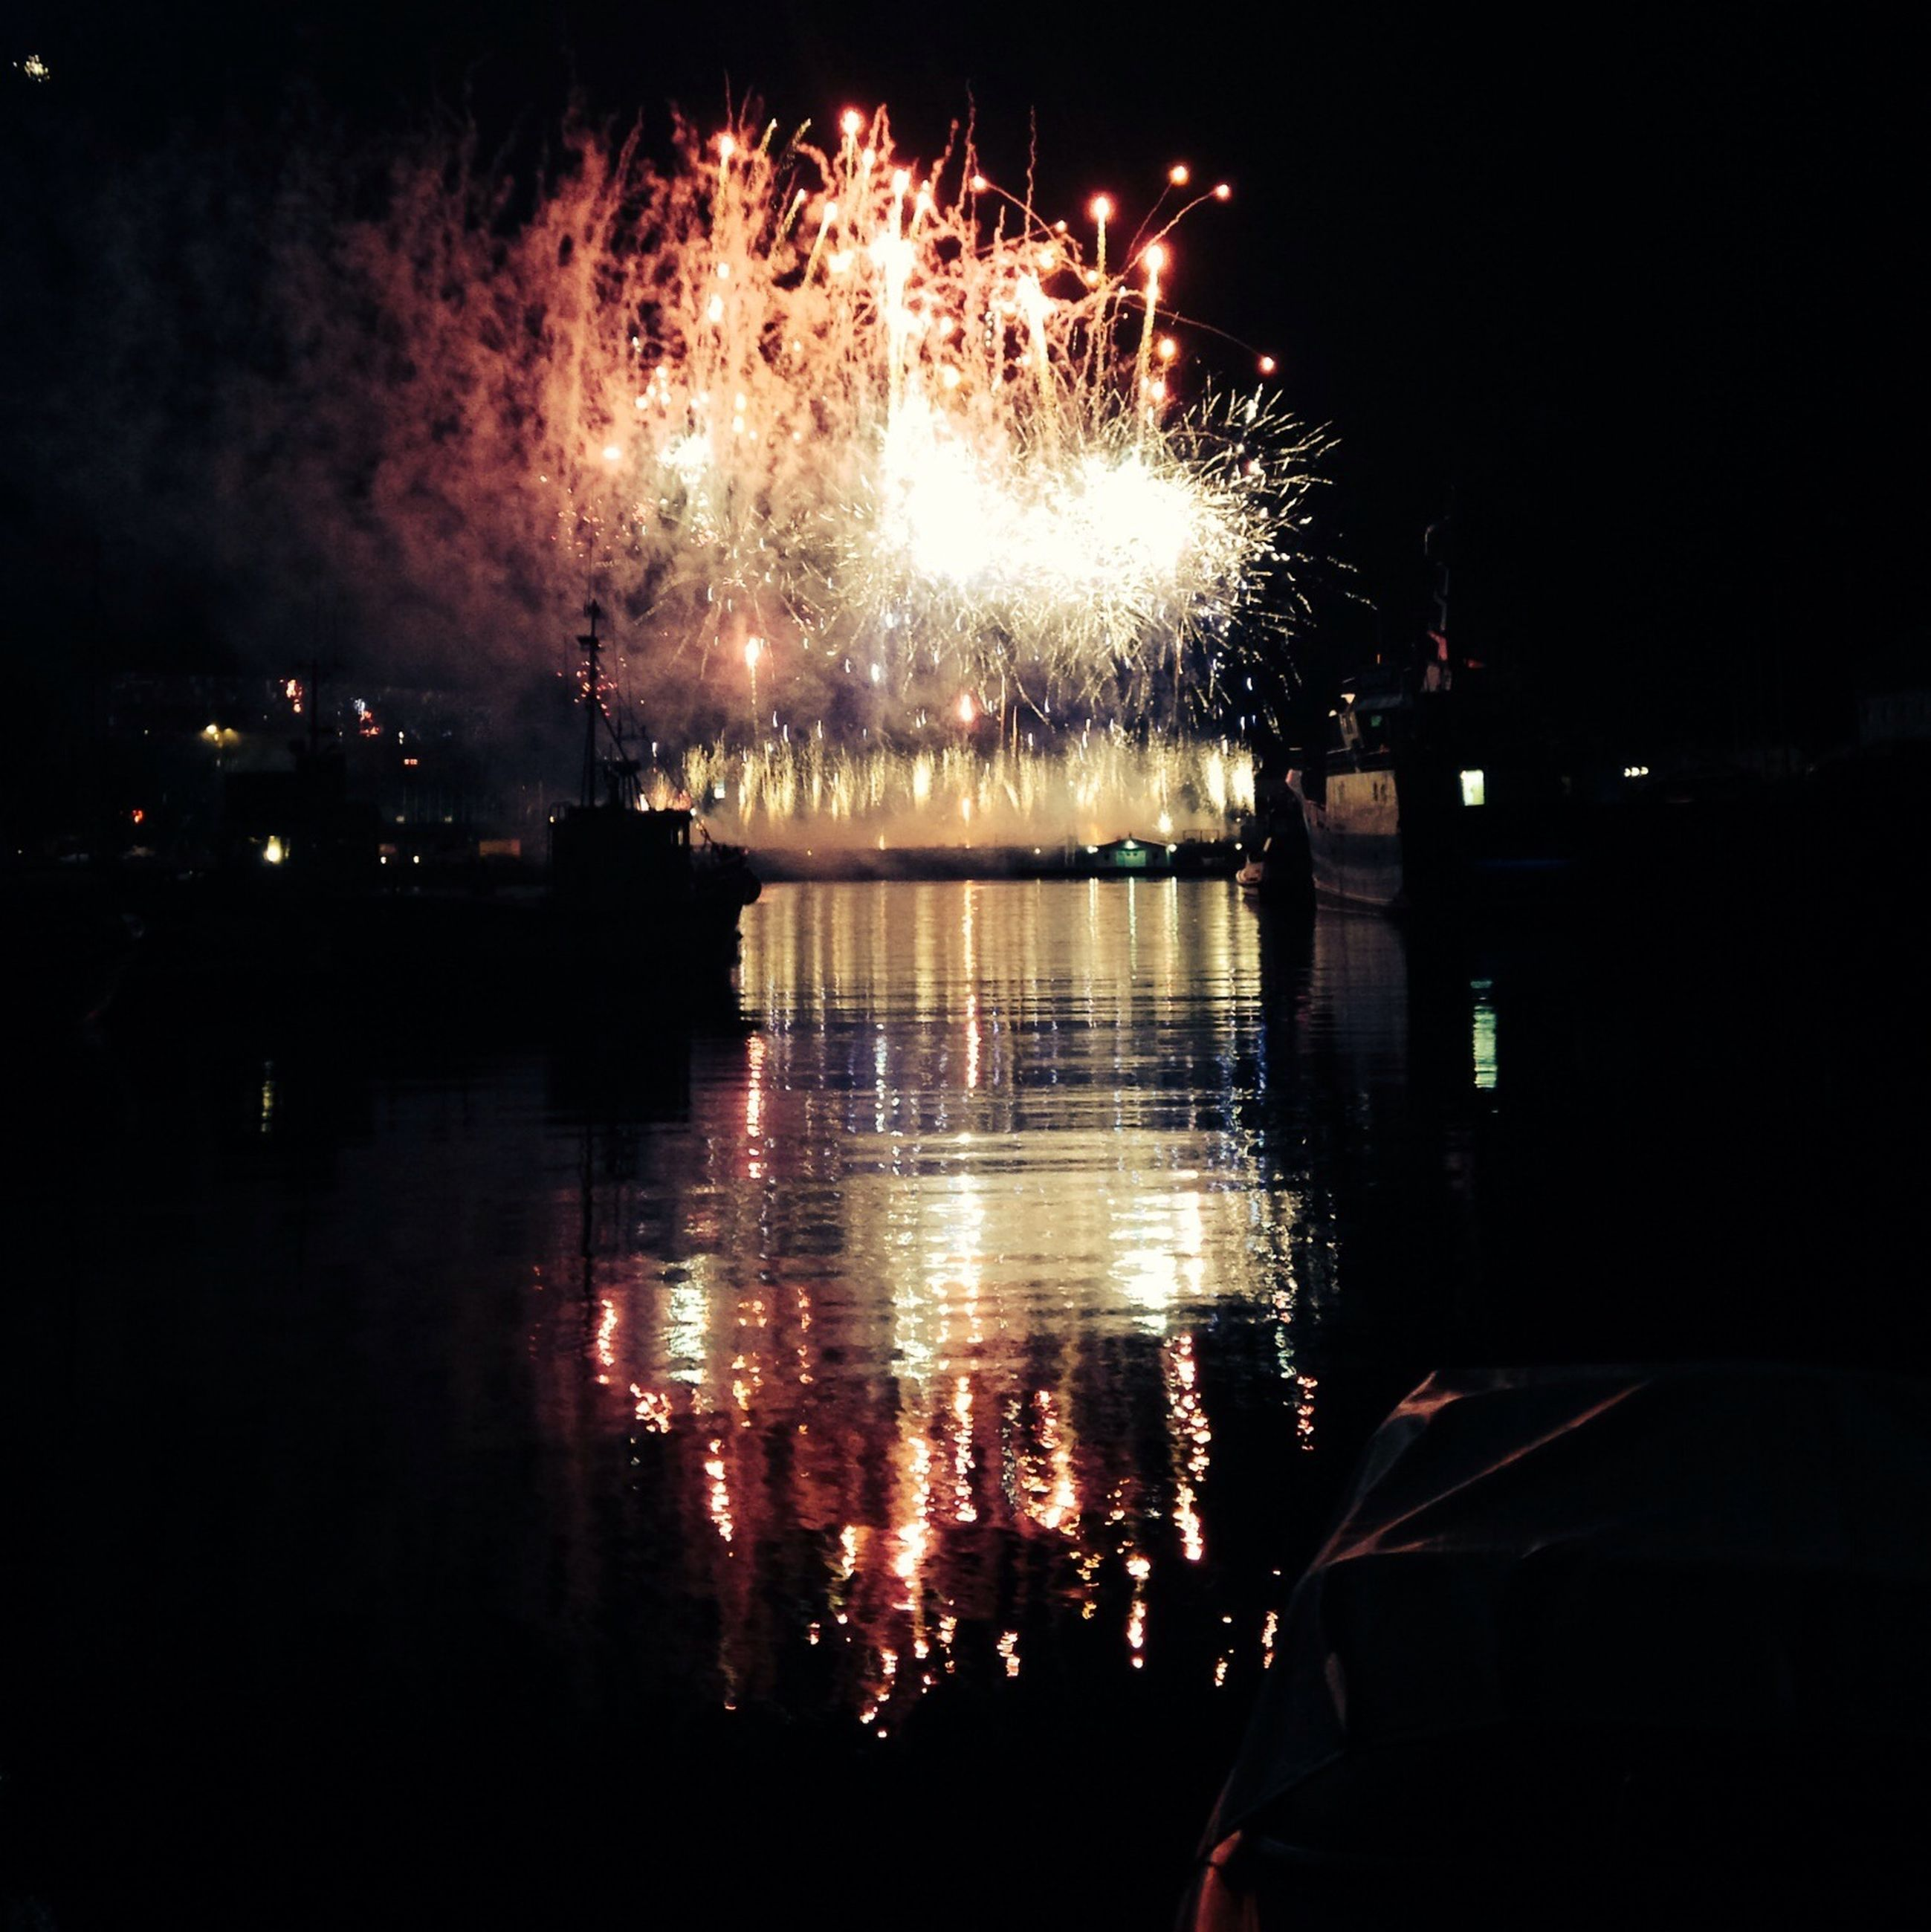 night, illuminated, firework display, long exposure, glowing, water, exploding, celebration, sparks, building exterior, reflection, firework - man made object, sky, motion, city, river, event, arts culture and entertainment, firework, entertainment